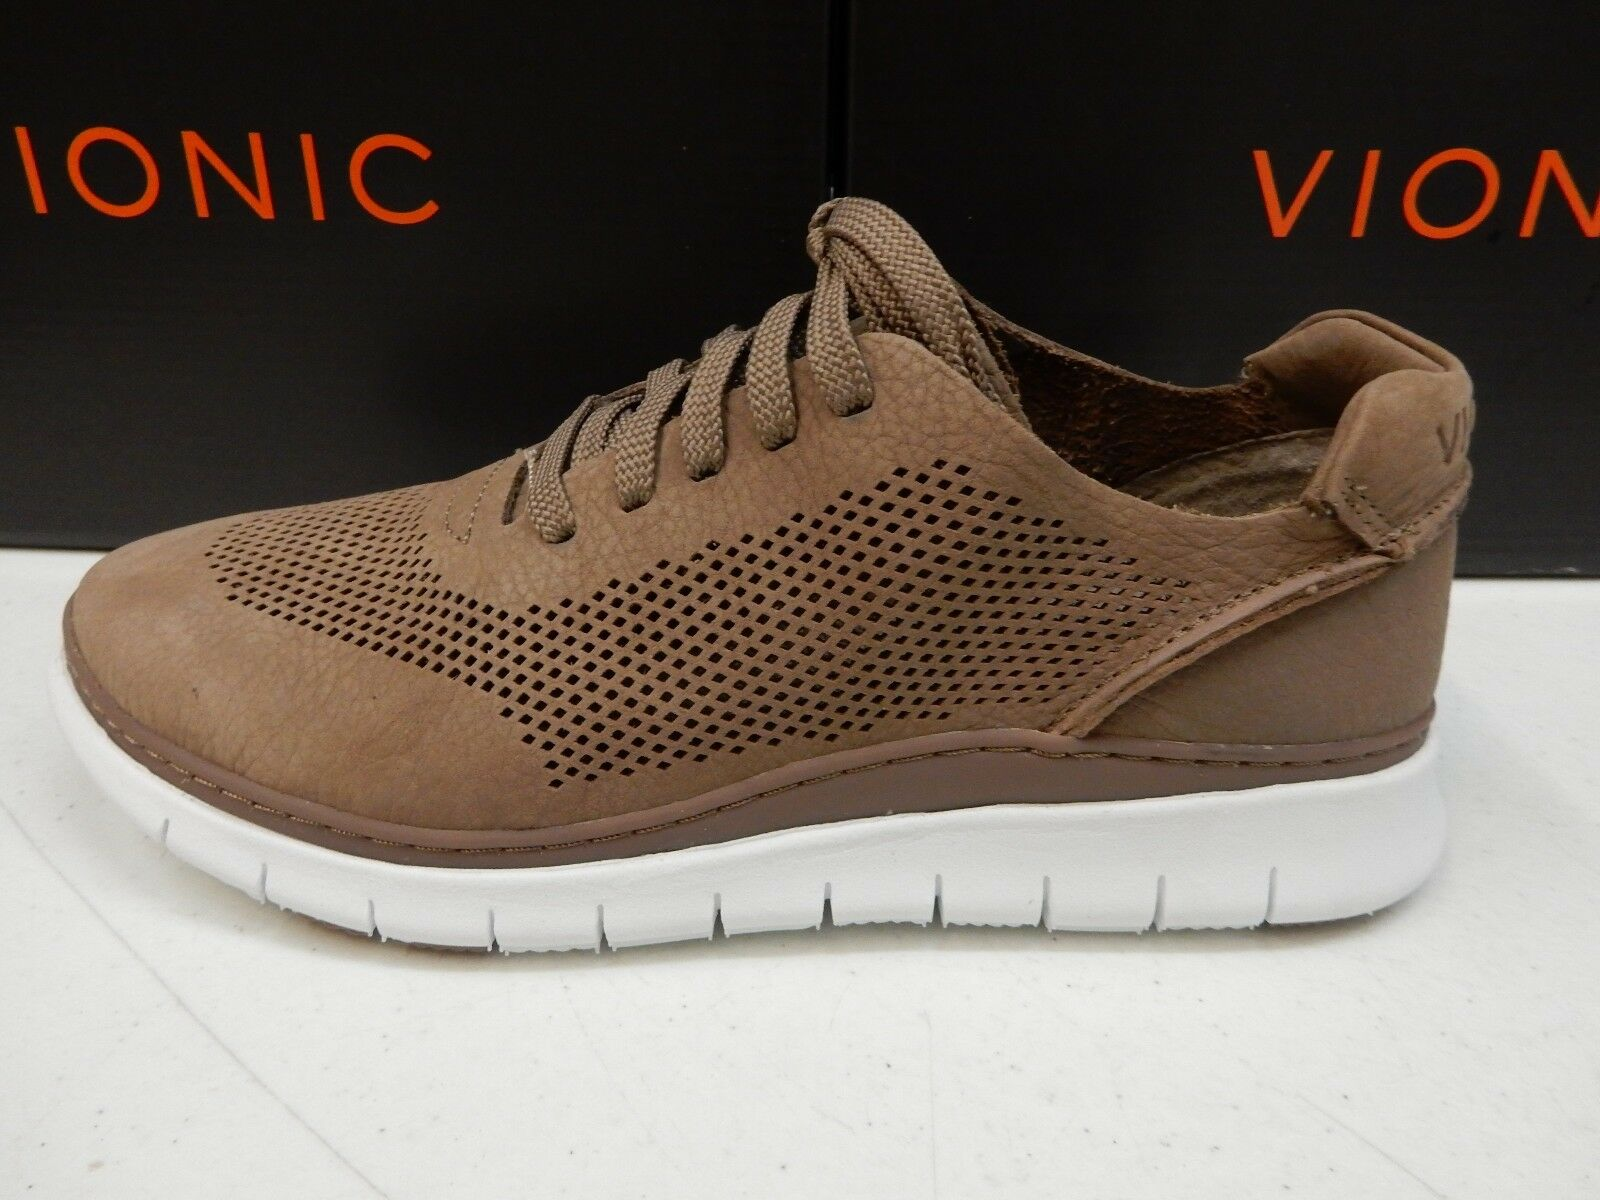 VIONIC WOMENS JOEY CASUAL SNEAKER TAUPE TAUPE TAUPE SIZE 7 82ca89